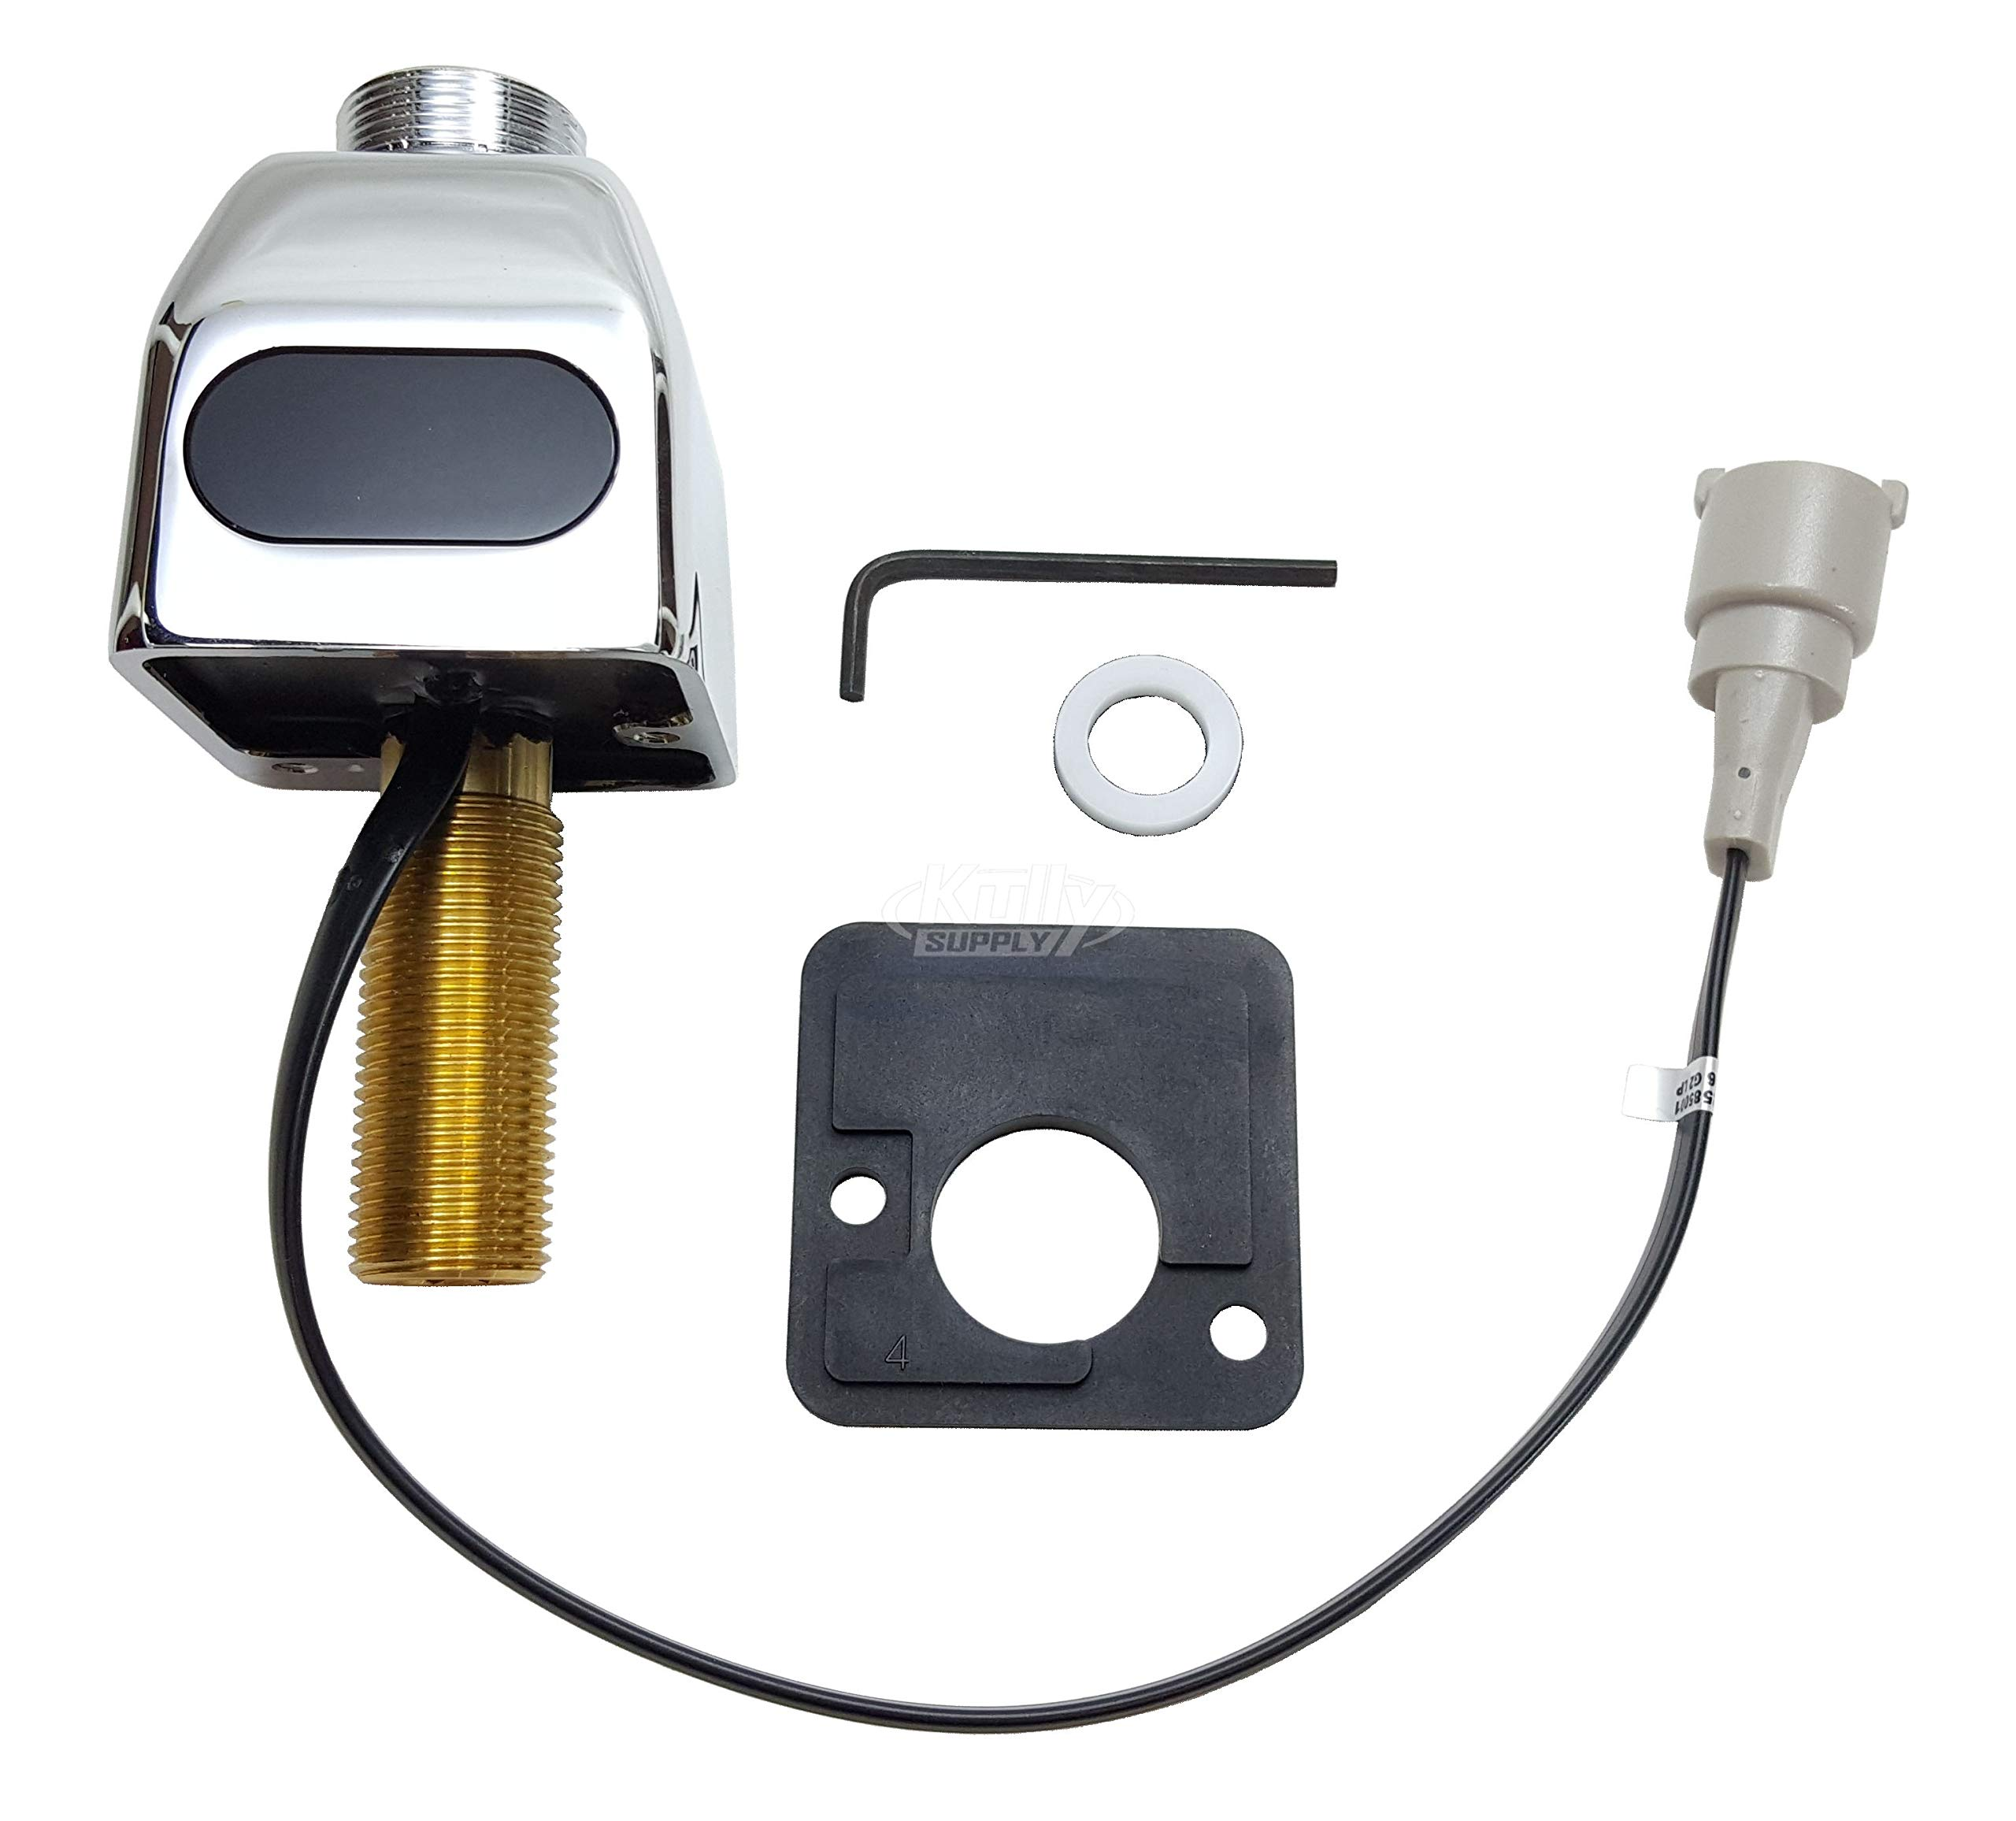 Zurn P6922-XL-1 Electronics for Series Z6922 Battery Powered Aquasense E-Z Sensor-Operated Faucets